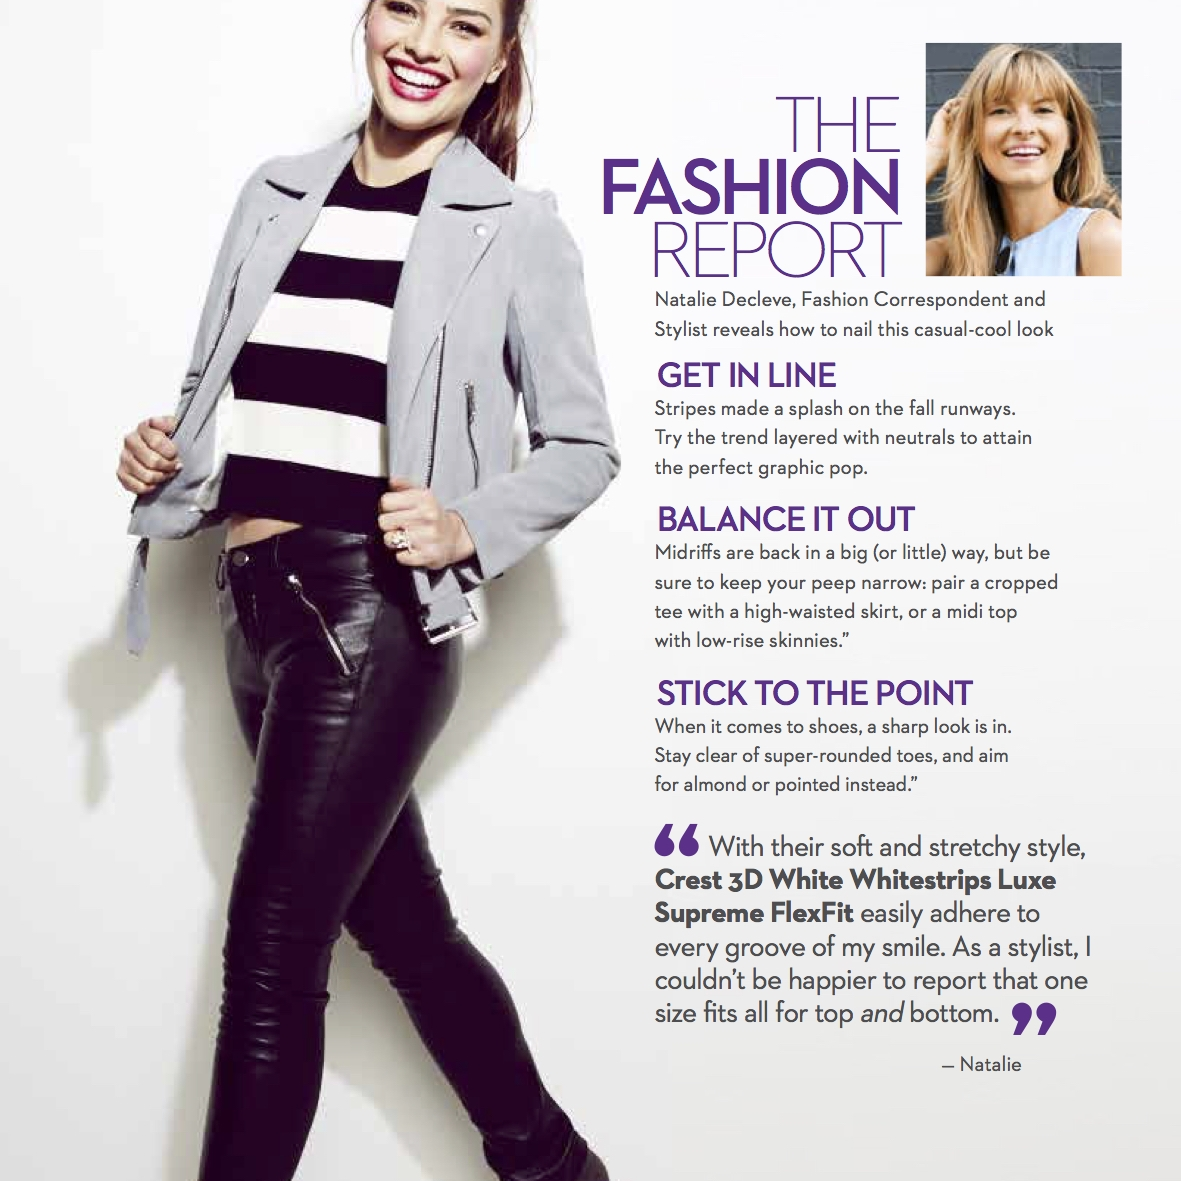 MARIE CLAIRE  The Fashion Report: Natalie Decleve reveals how to get this casual-cool look